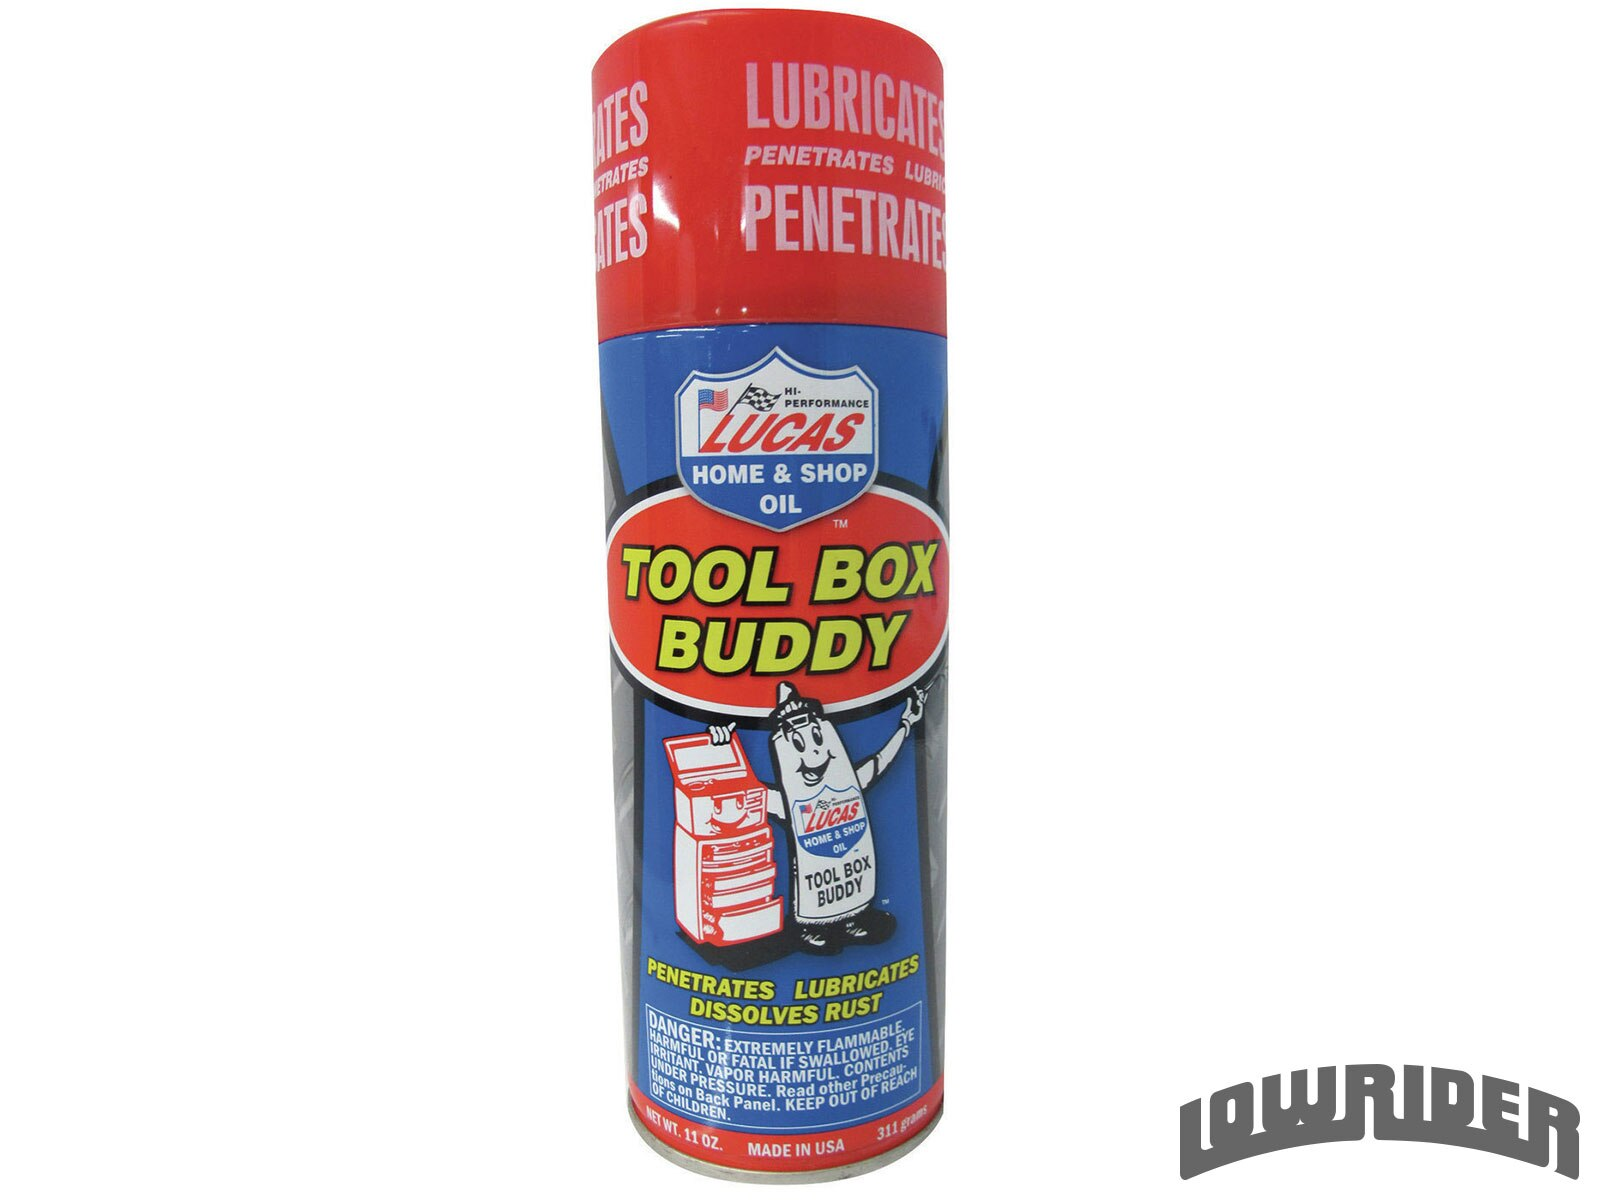 1305-lucas-oil-tool-box-buddy-product1